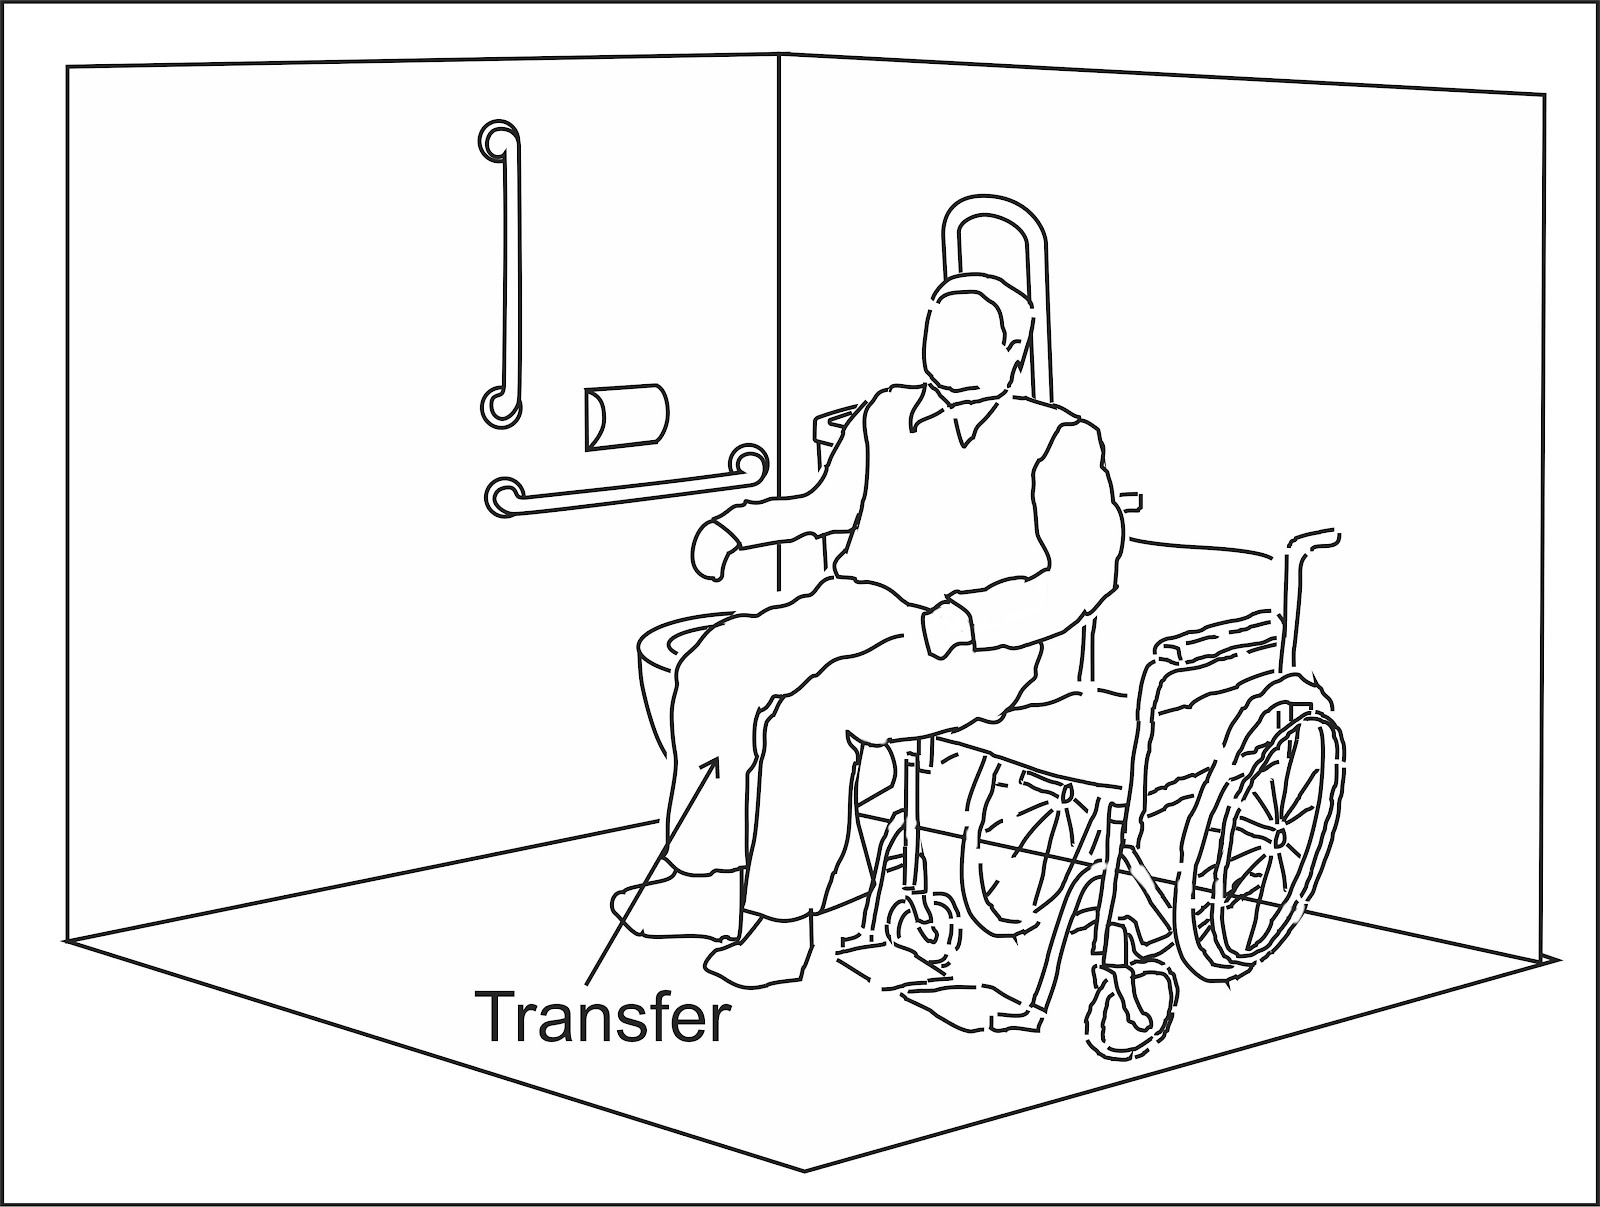 Wheelchair Access Penang Wapenang Toilet WC For Disabled People - Dimensions of disabled toilet